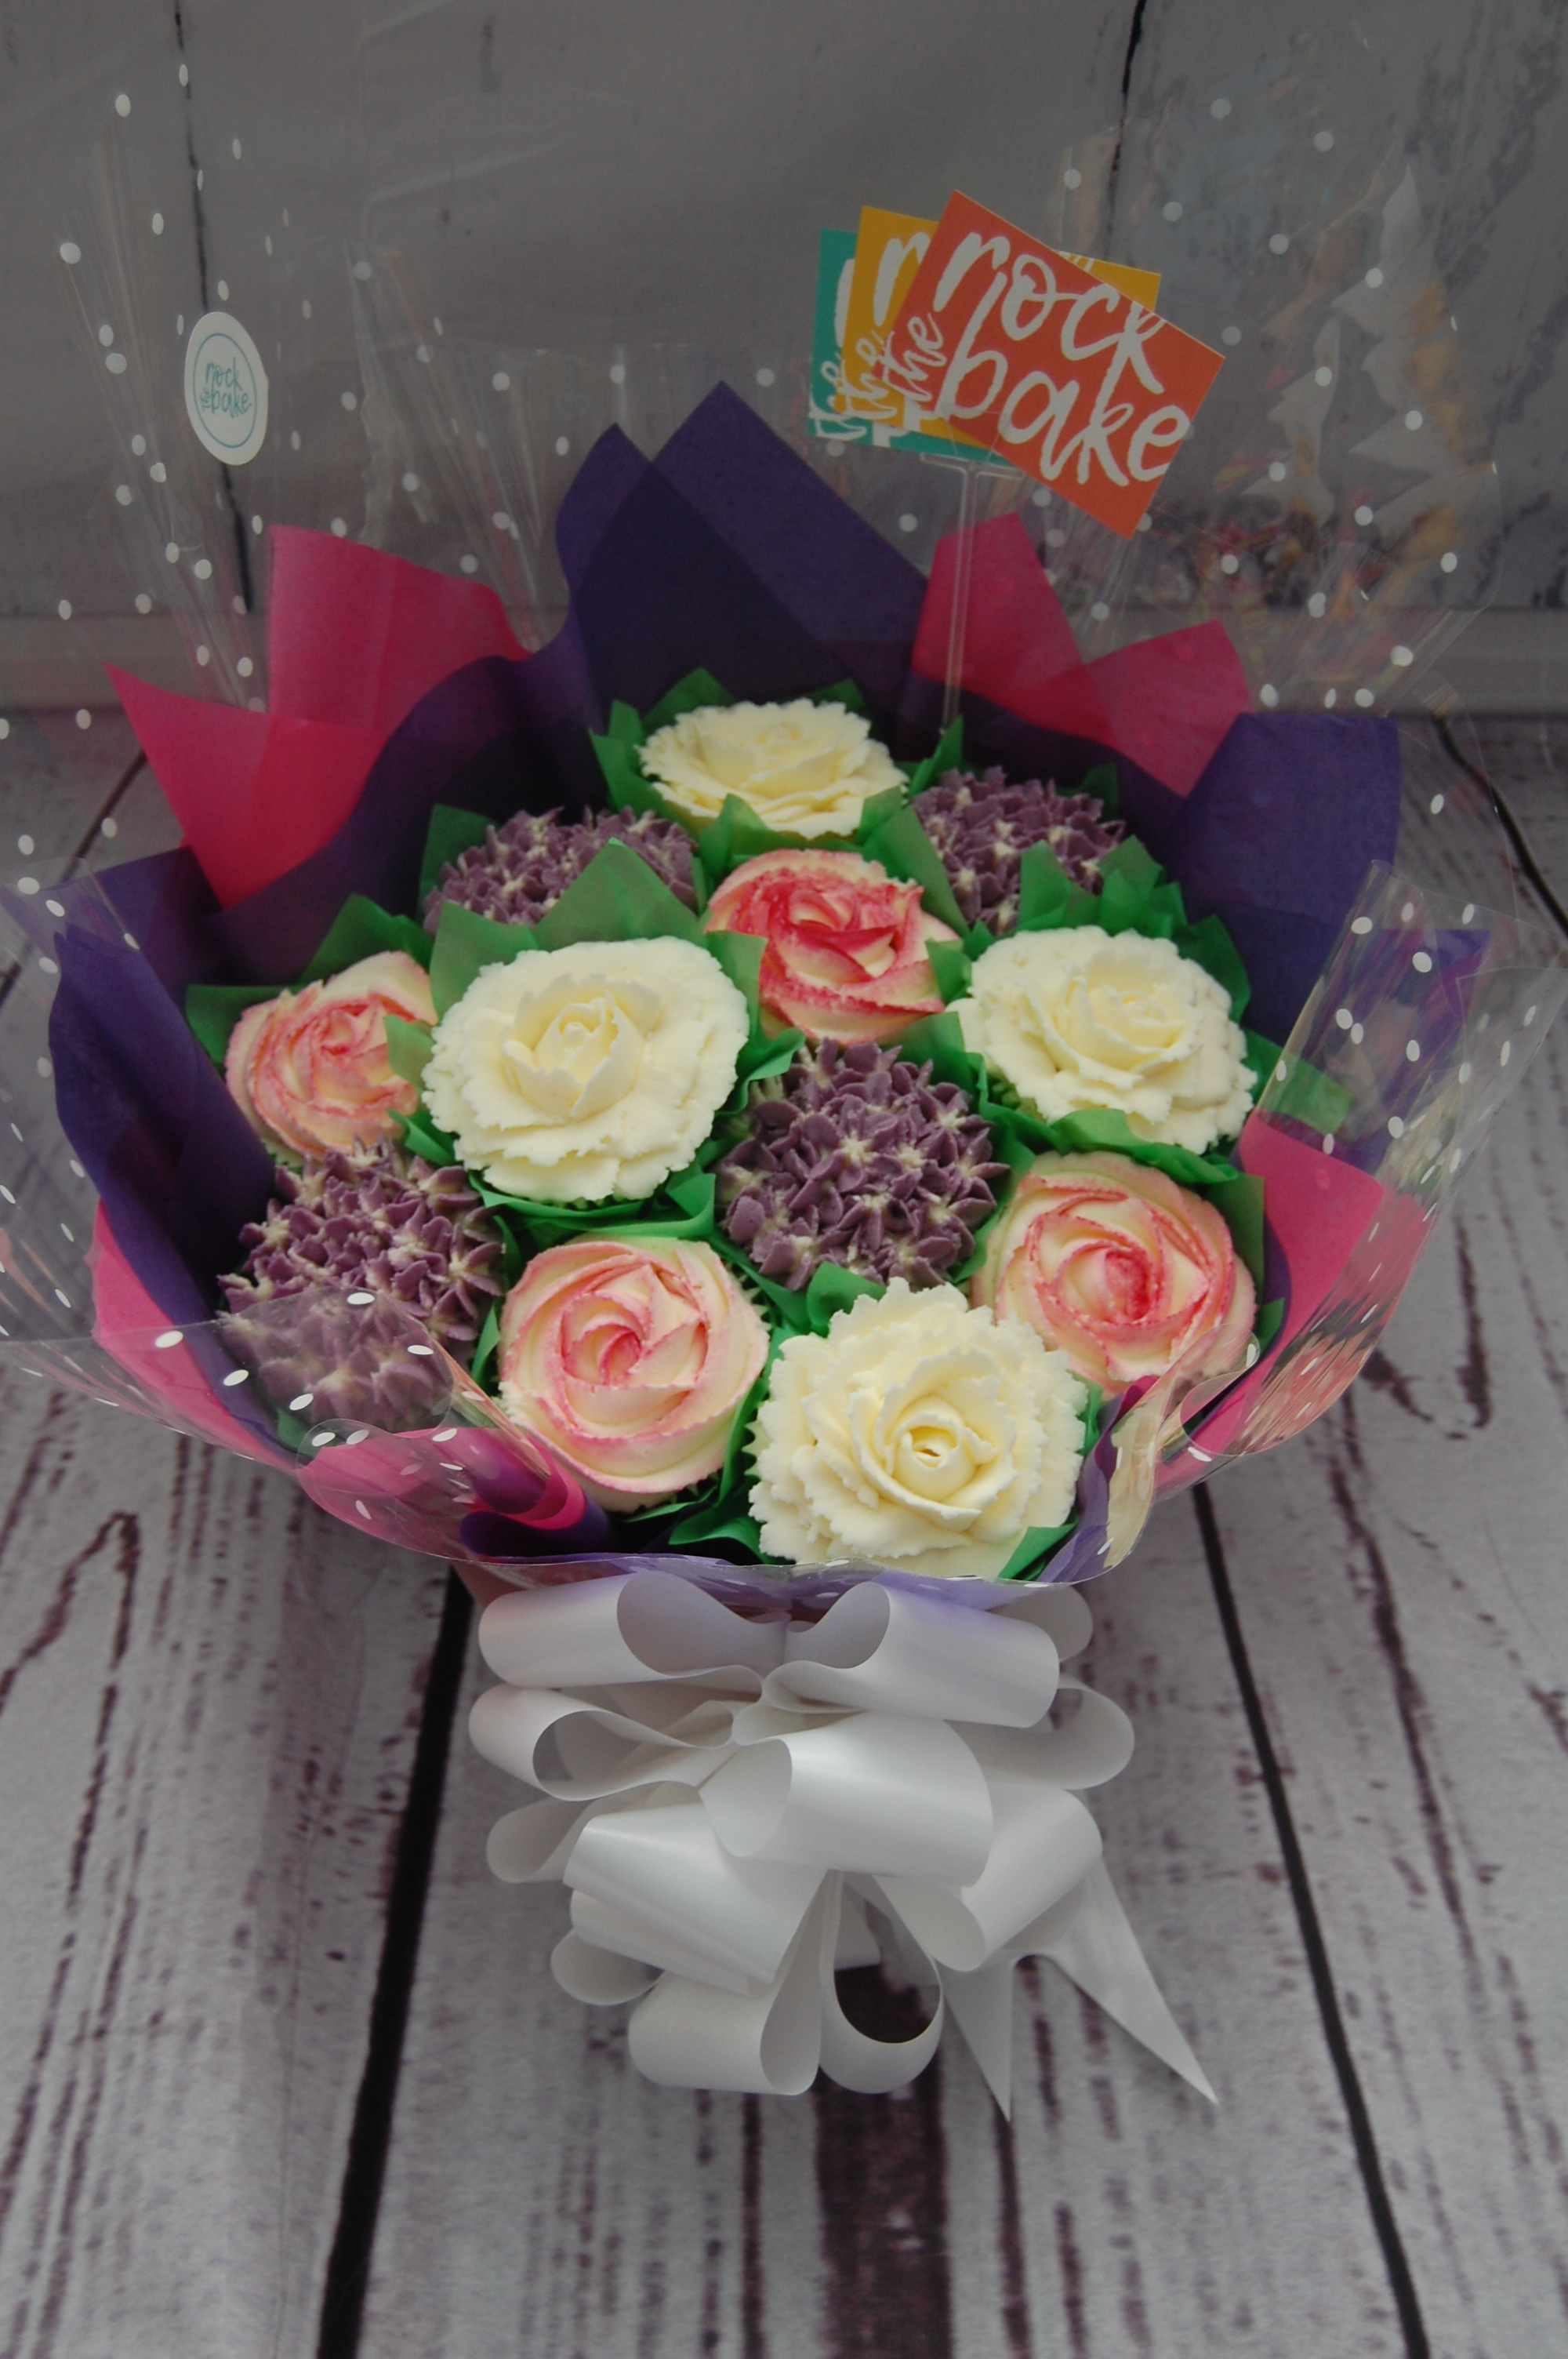 Standard Cupcake Bouquet in bold pinks and purples